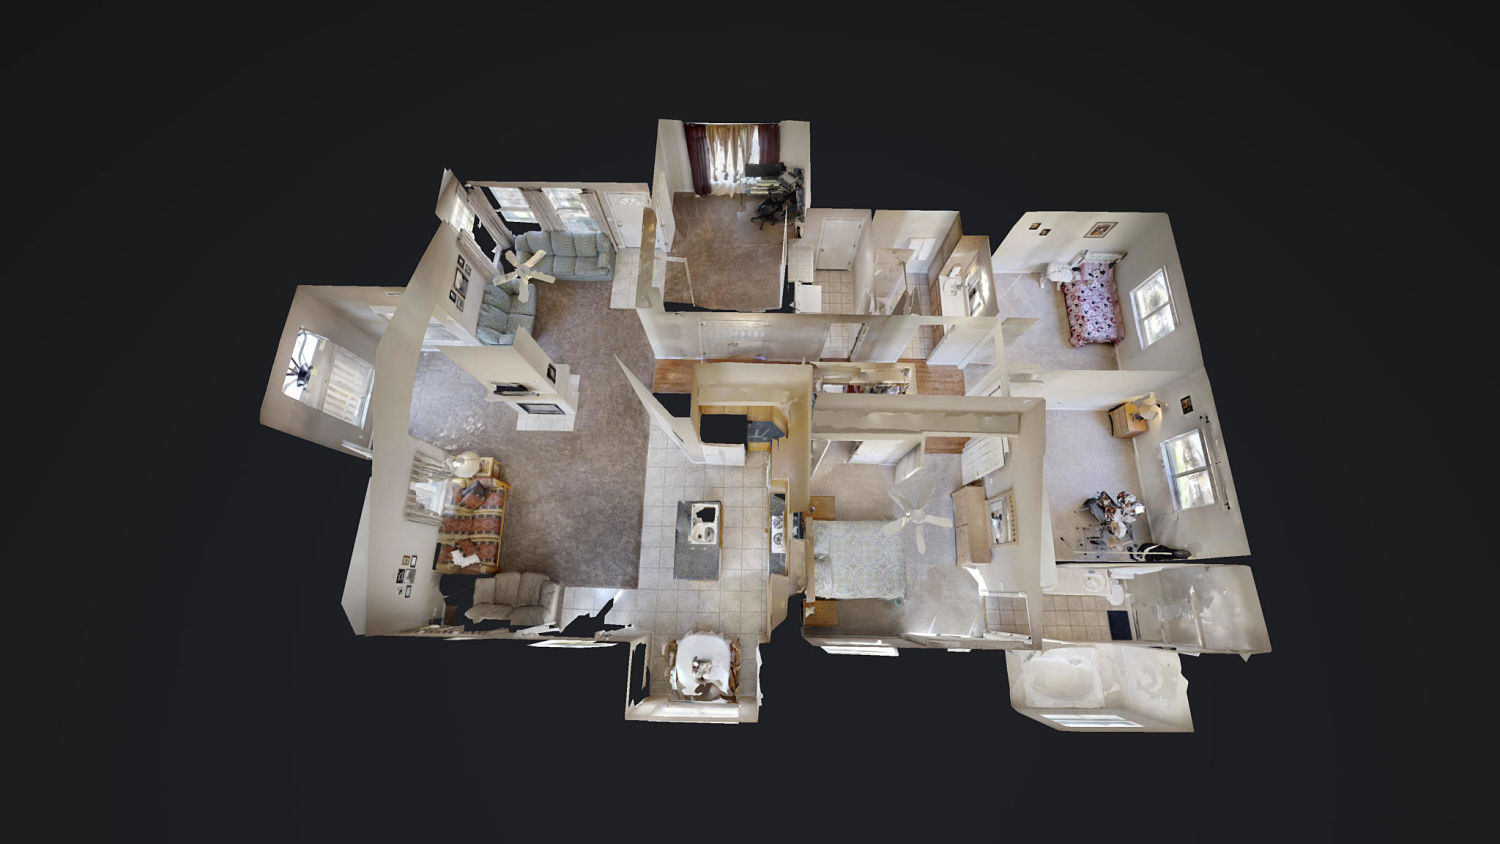 View 3D Tour of Home -